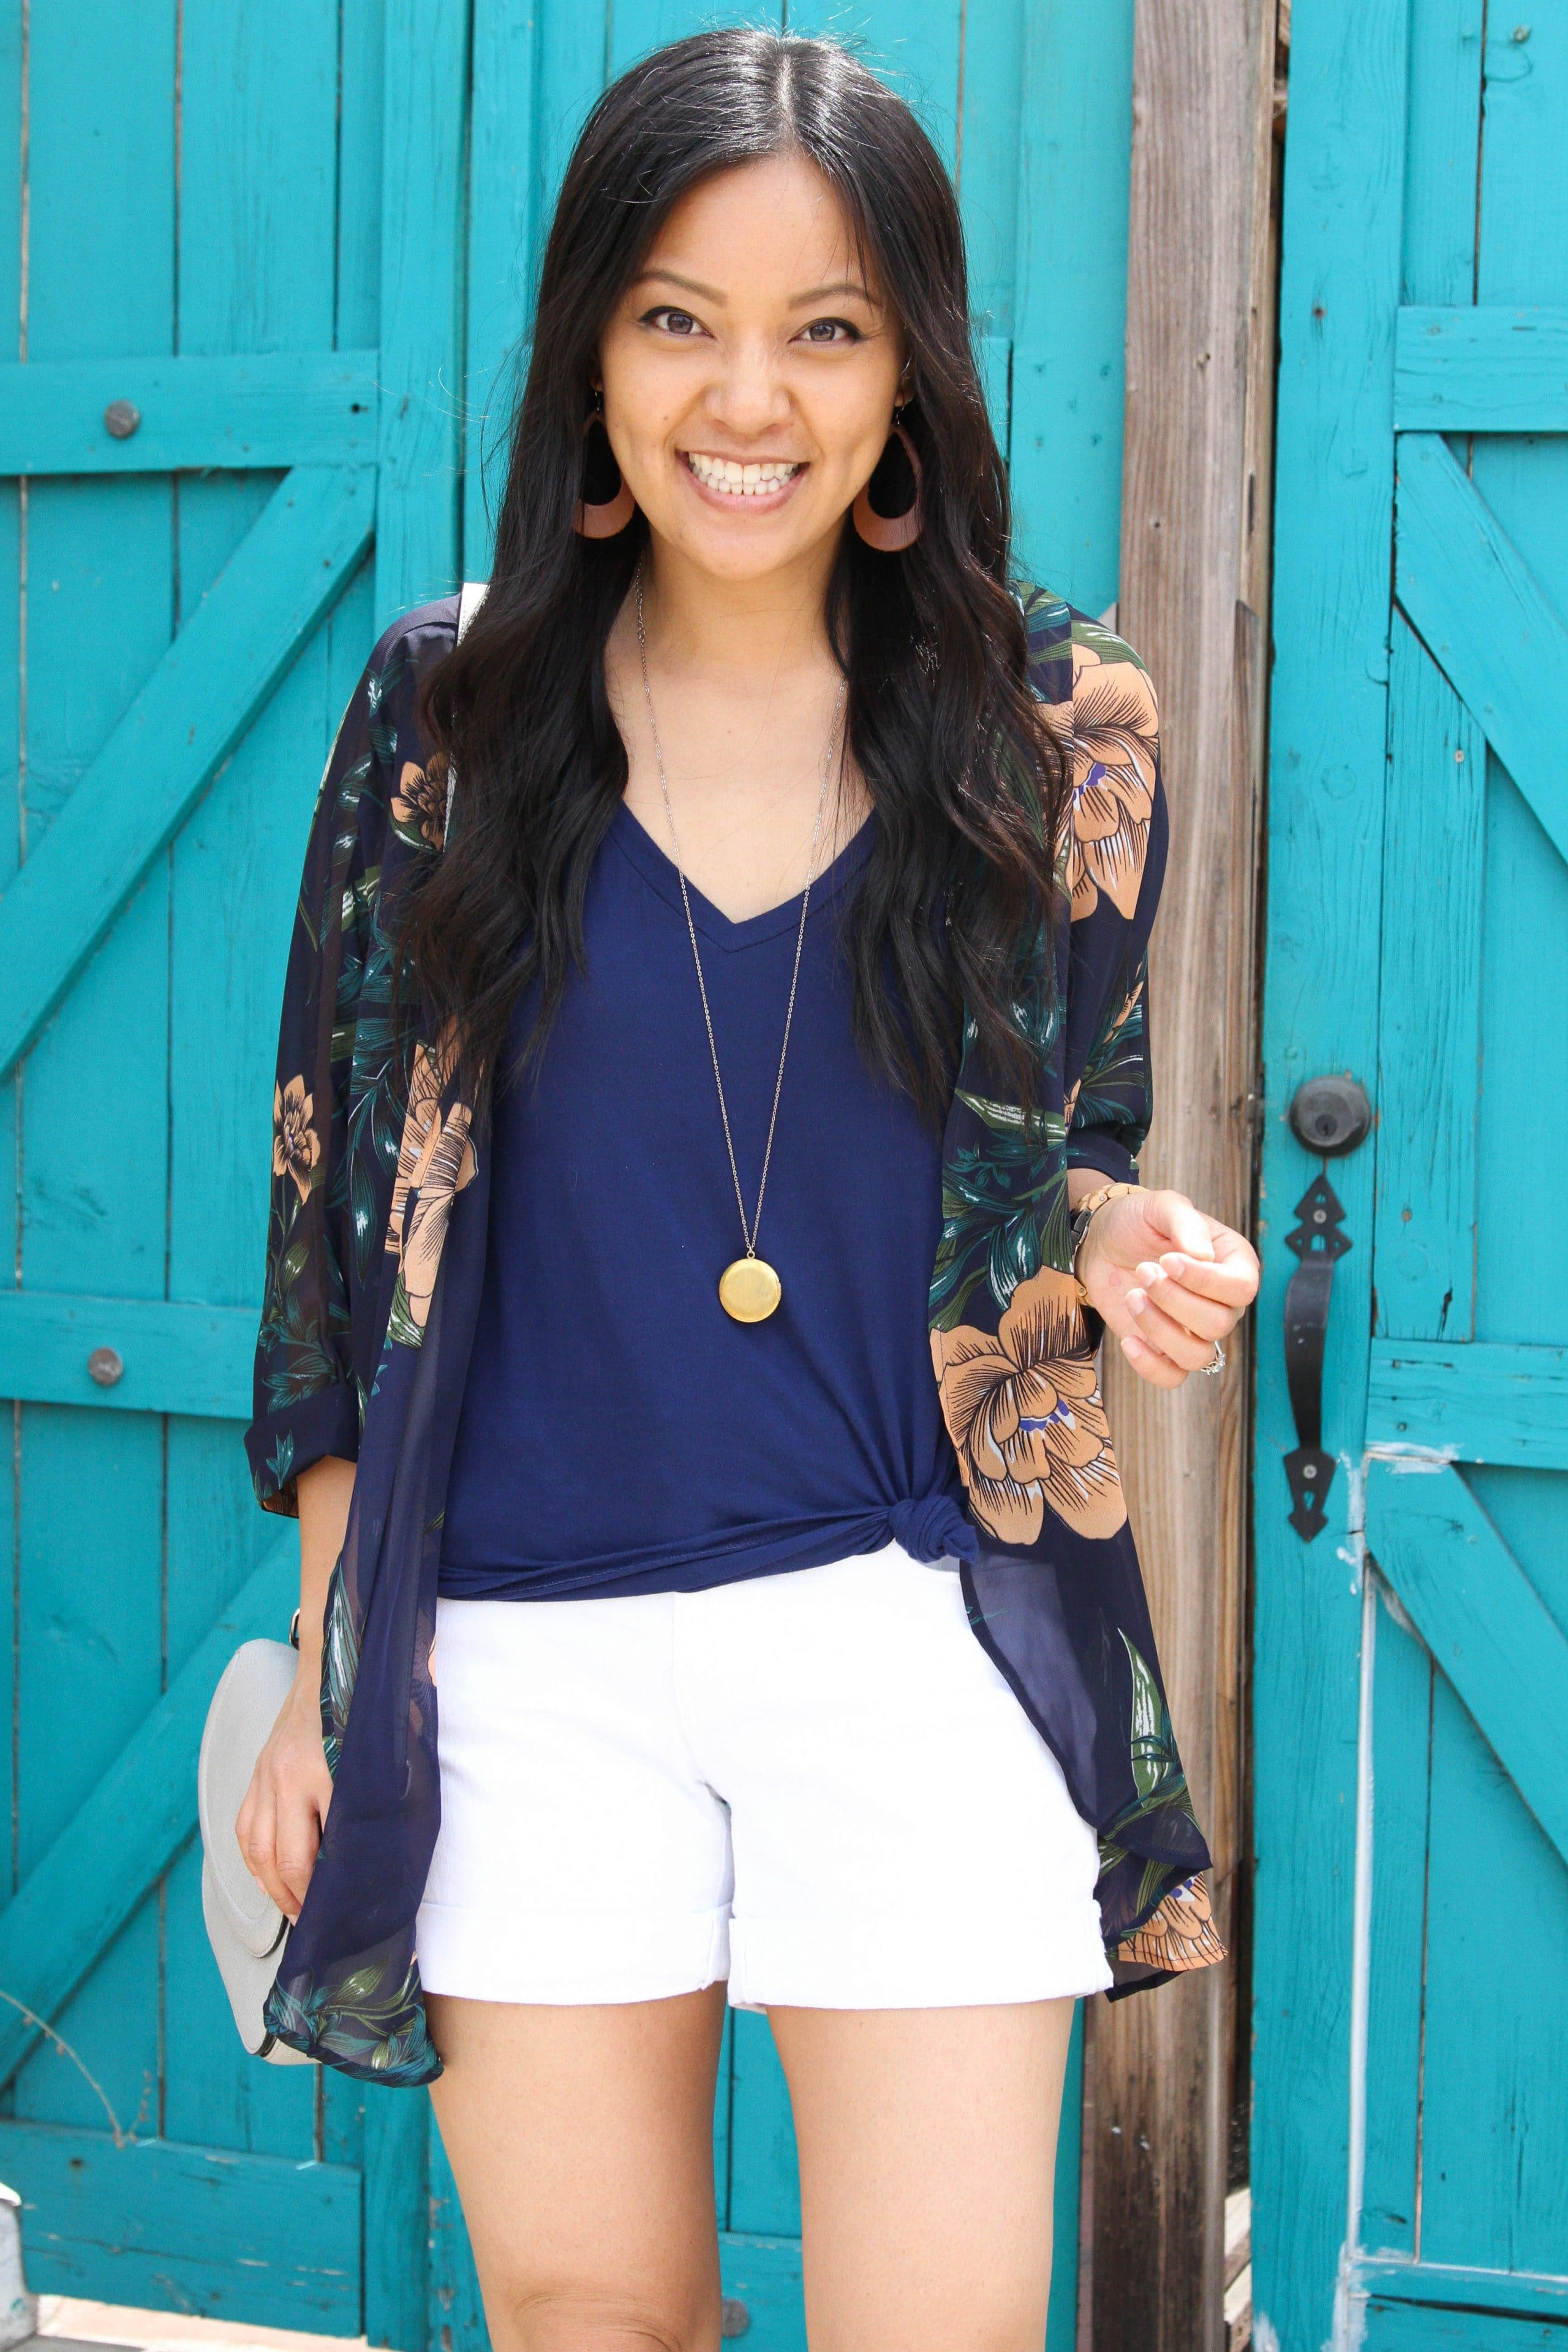 navy top + white shorts + navy floral wrap + long pendant necklace